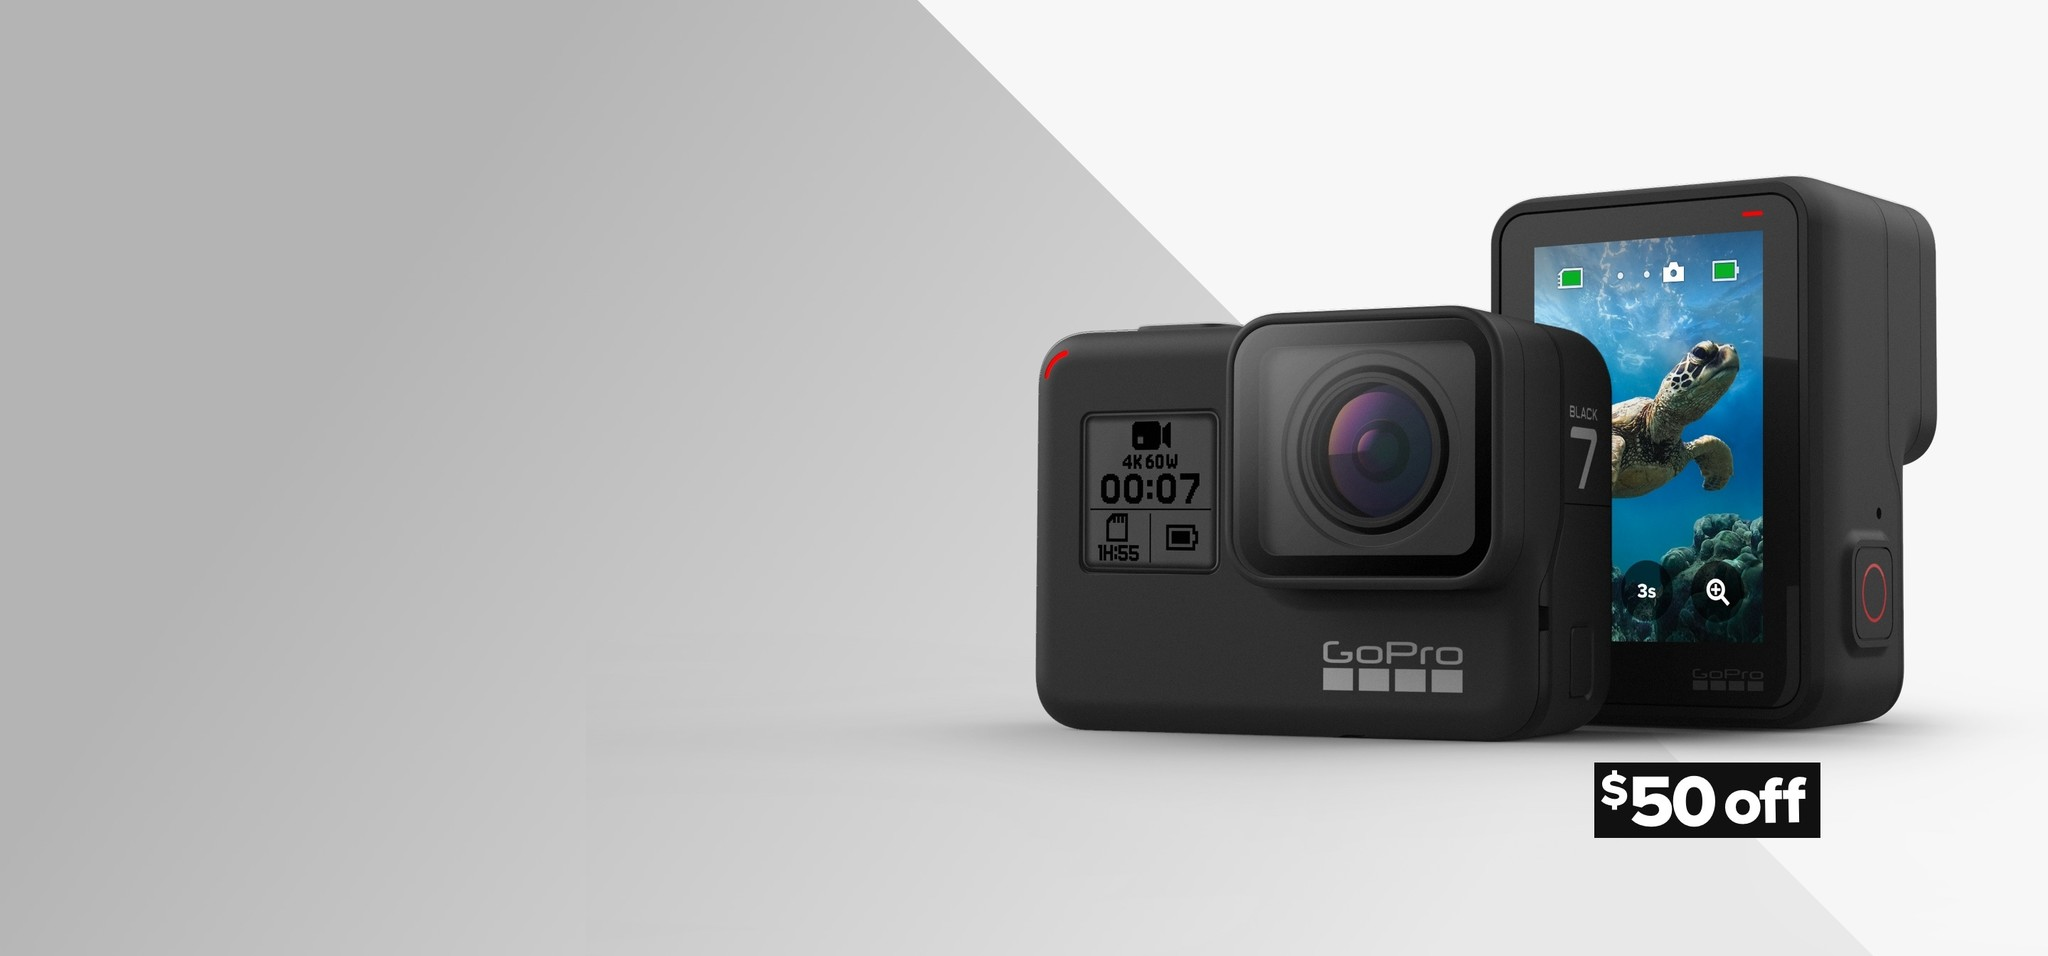 GoPro GoPro HERO7 Black w/ SD Card